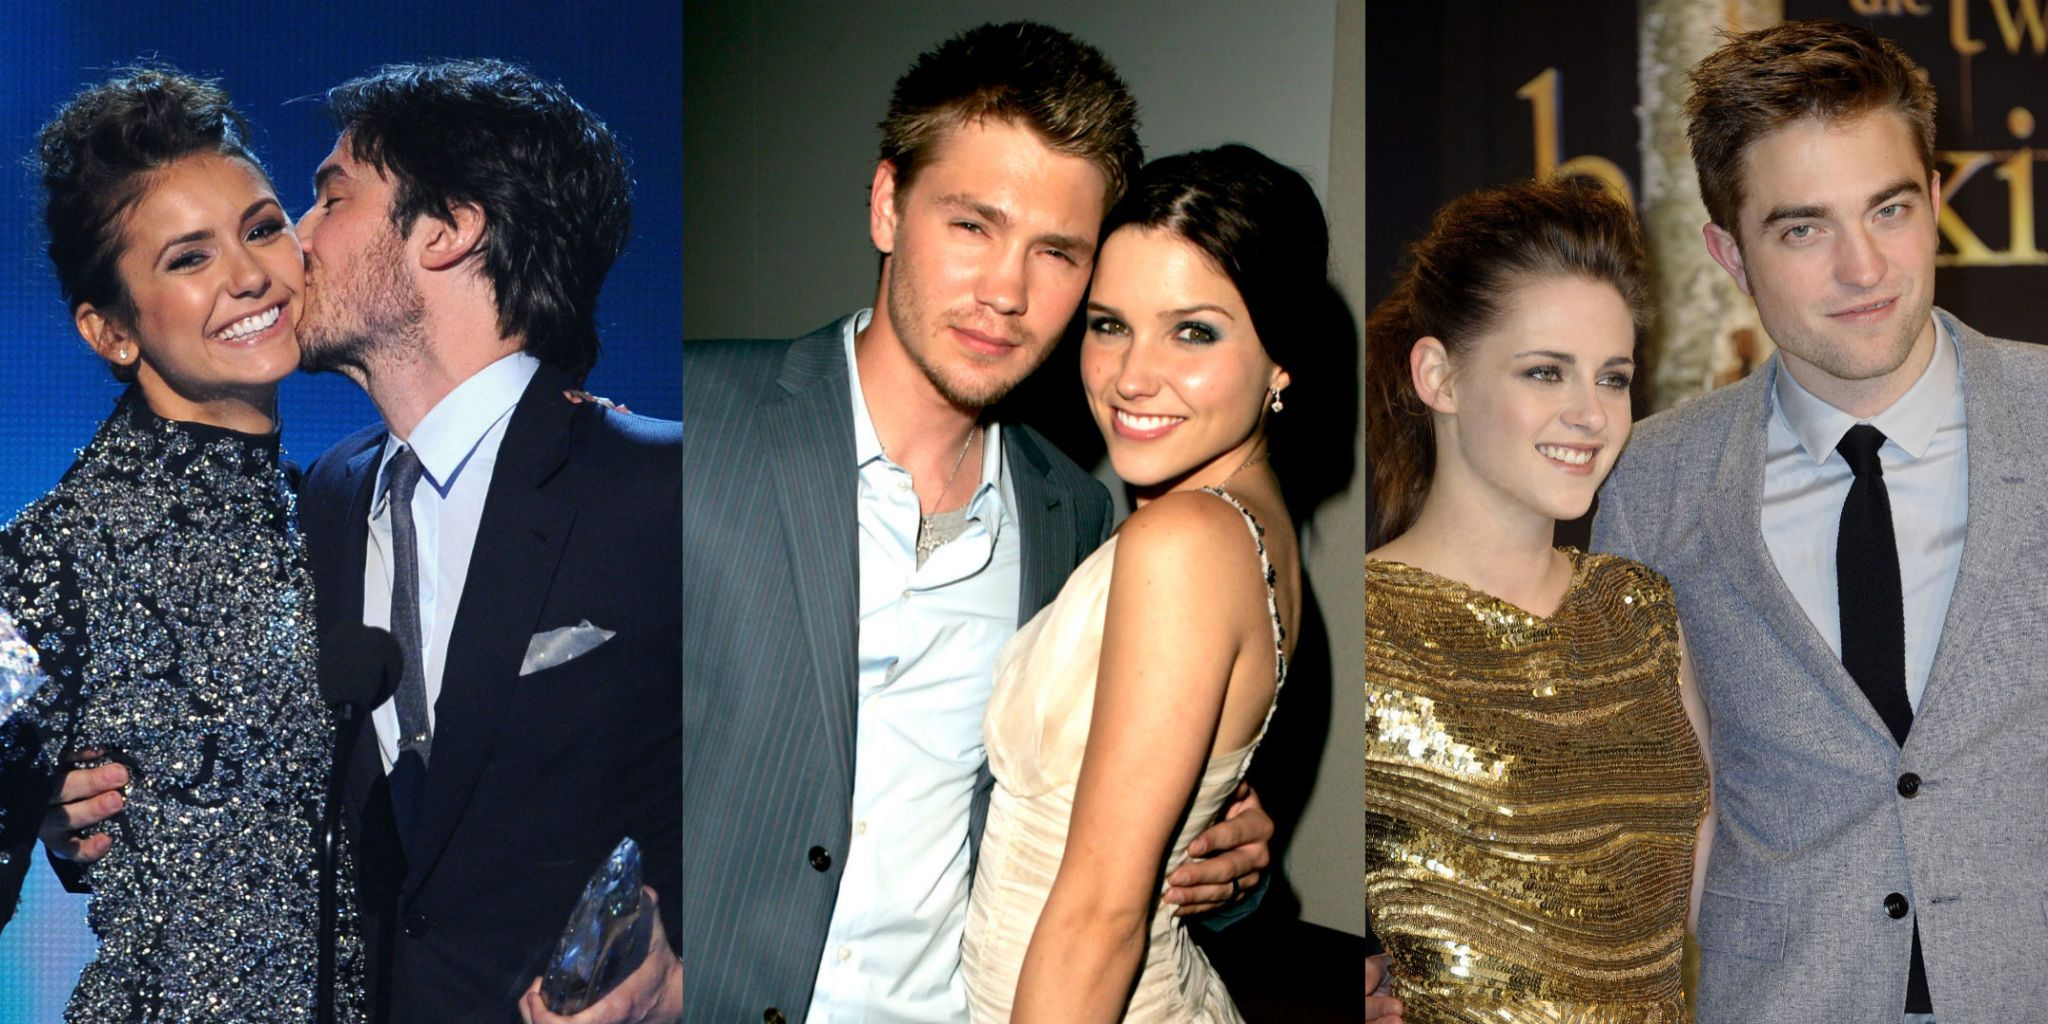 Hollywood couples who have dated but not had sex